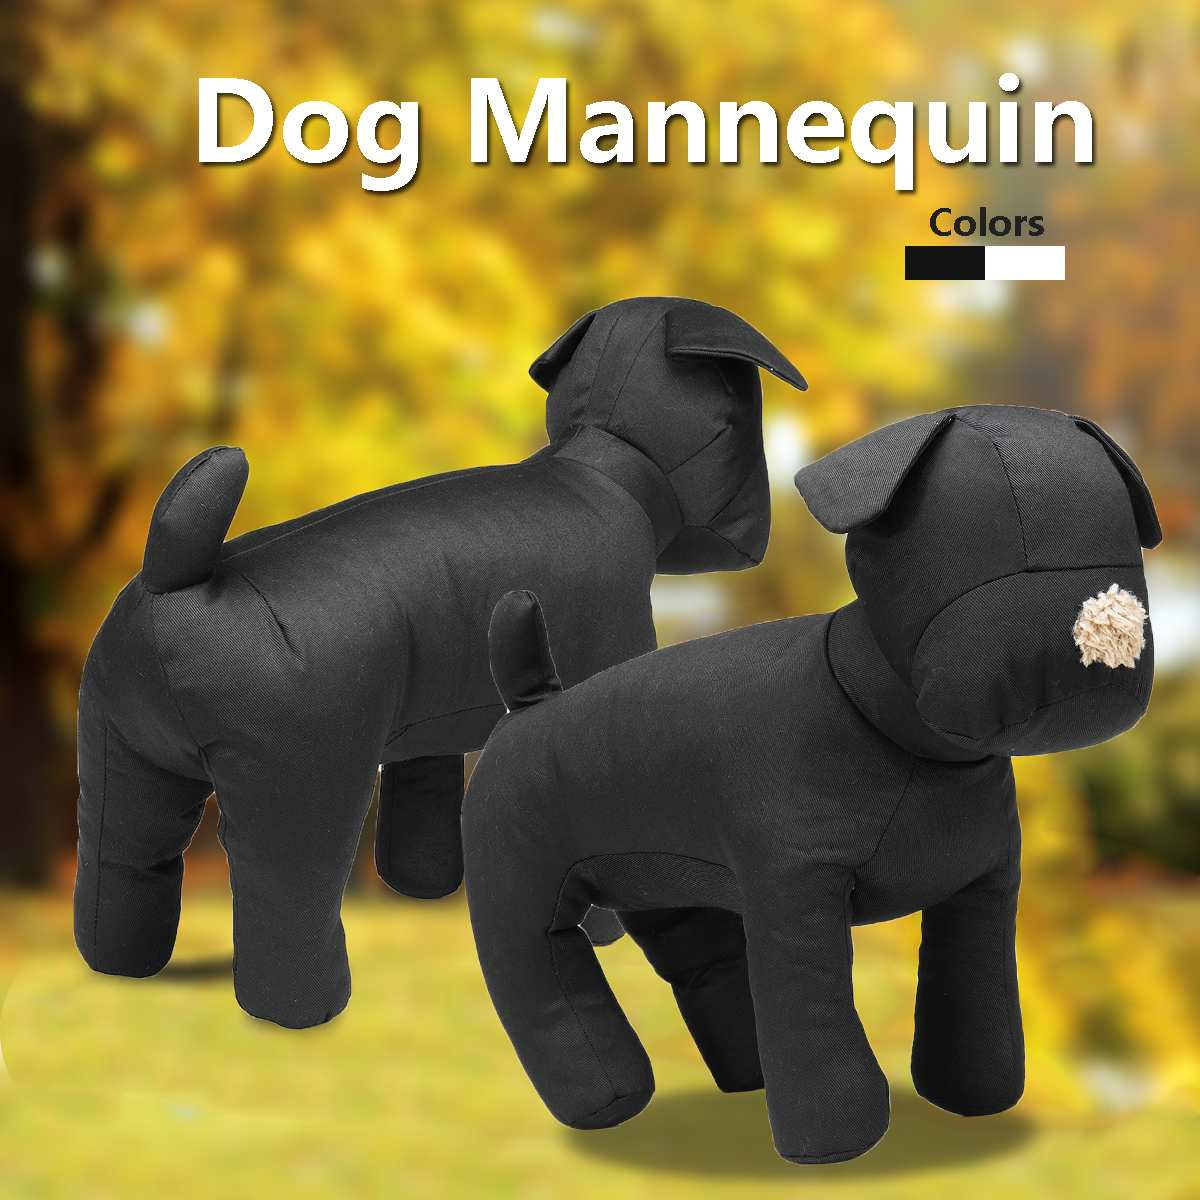 Adjusted Leg Poses Dog Mannequin Cotton Stuffed Model Clothing Apparel Shop Collar Display Pet Toy Black/White For Retail Store